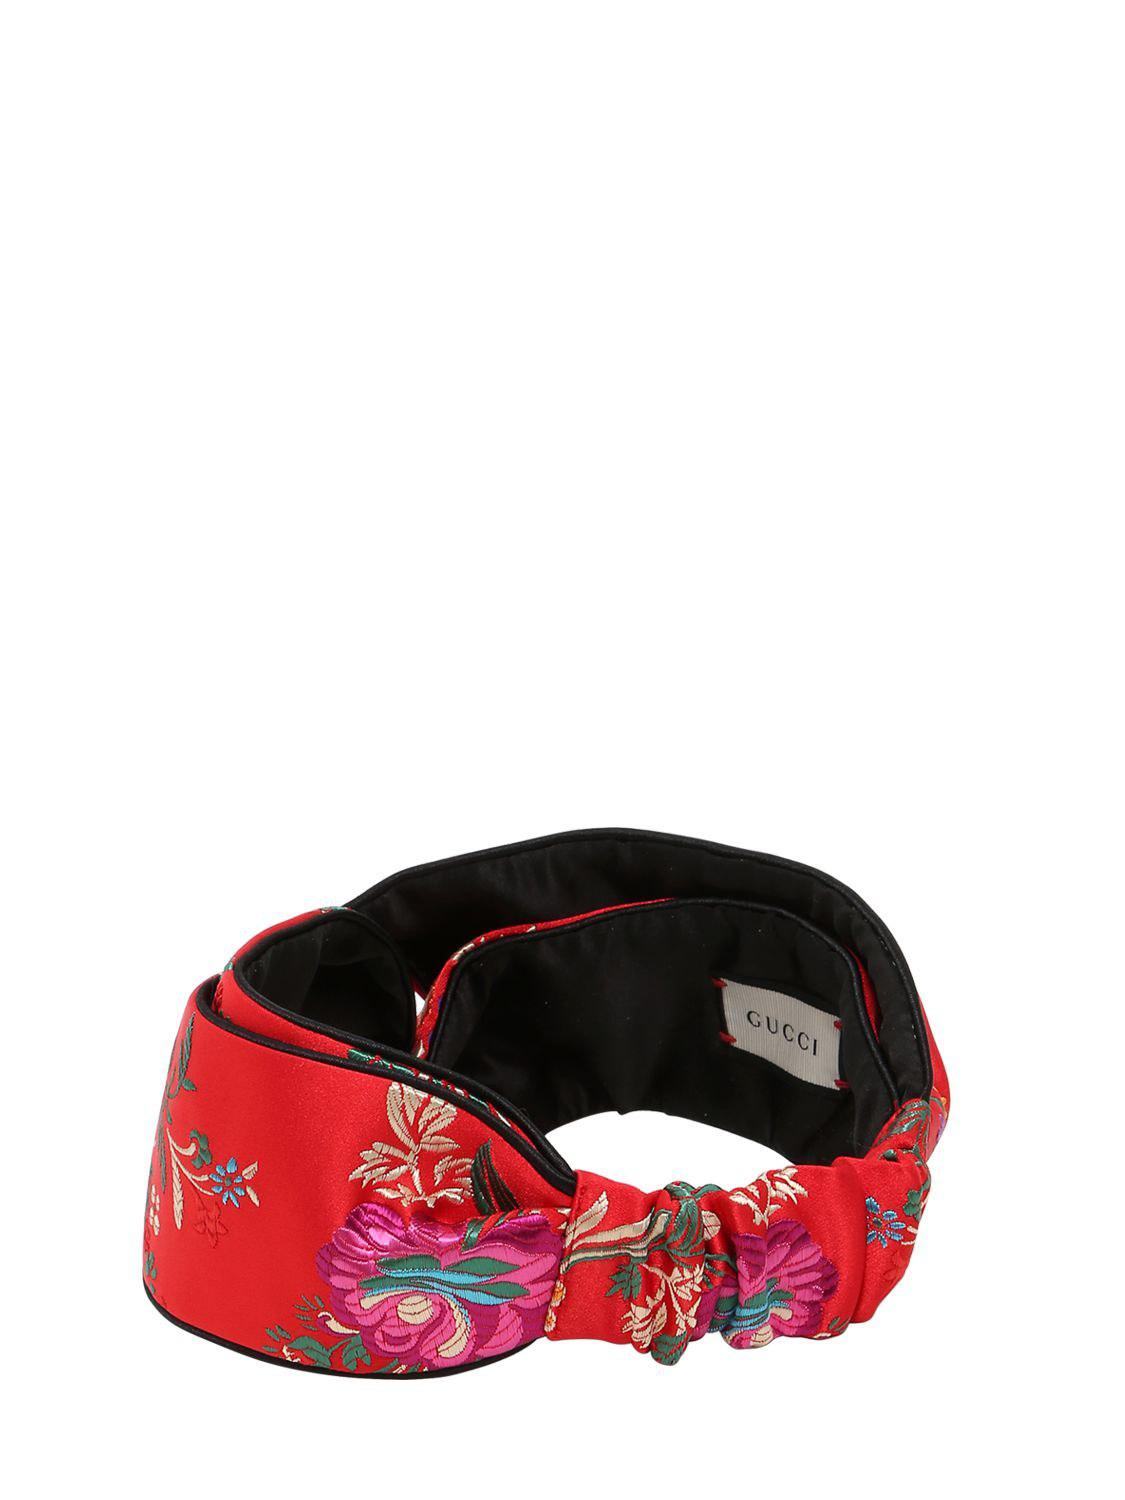 8618abe8058 Lyst - Gucci Tokyo Printed Silk Knot Headband in Red